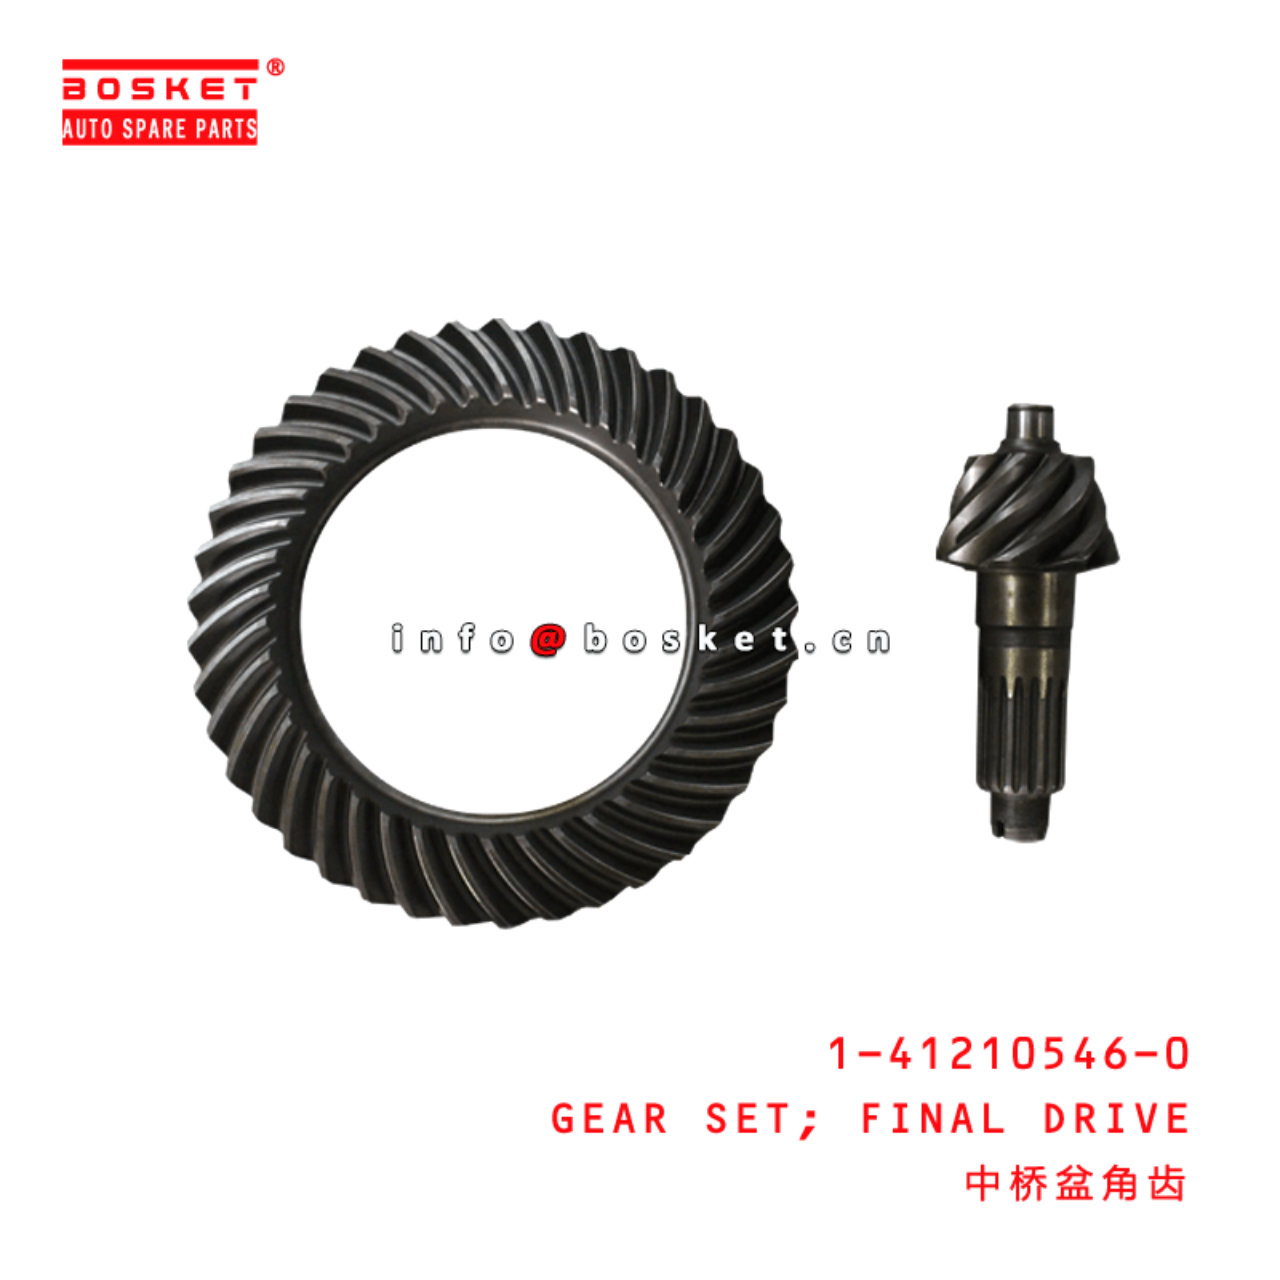 1-19500584-0 1-19500456-0 Power Steering Oil Pump Assembly 1195005840 1195004560 Suitable for ISUZU